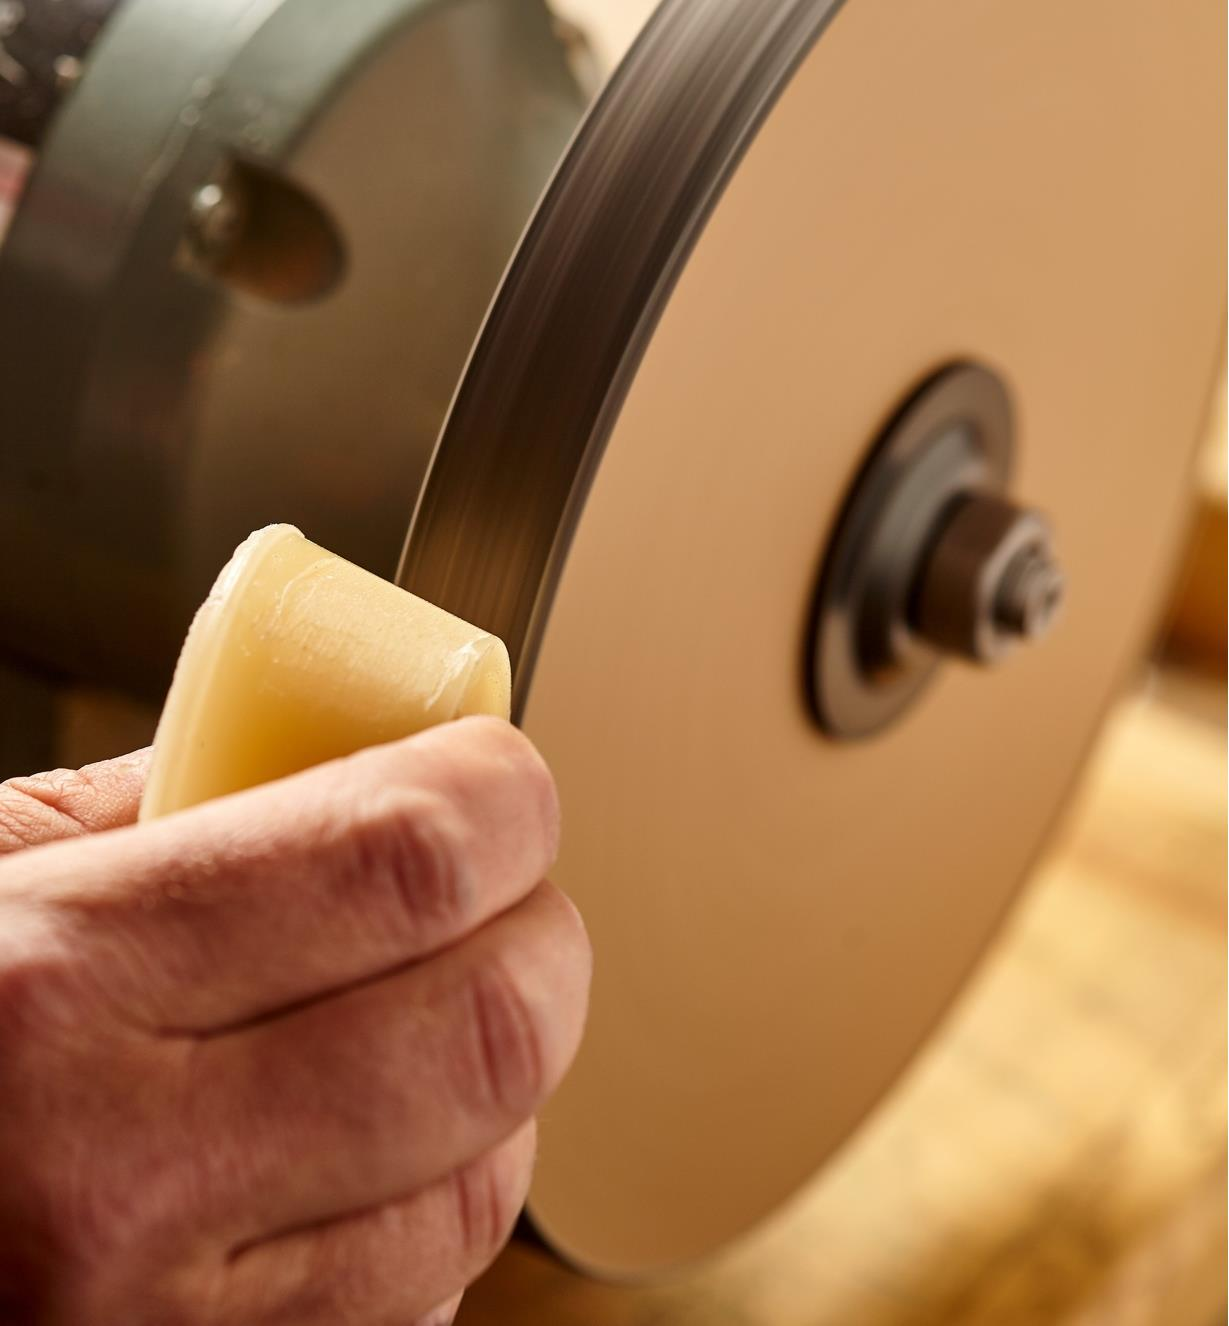 Applying conditioning wax to the grit wheel of the razor sharp kit